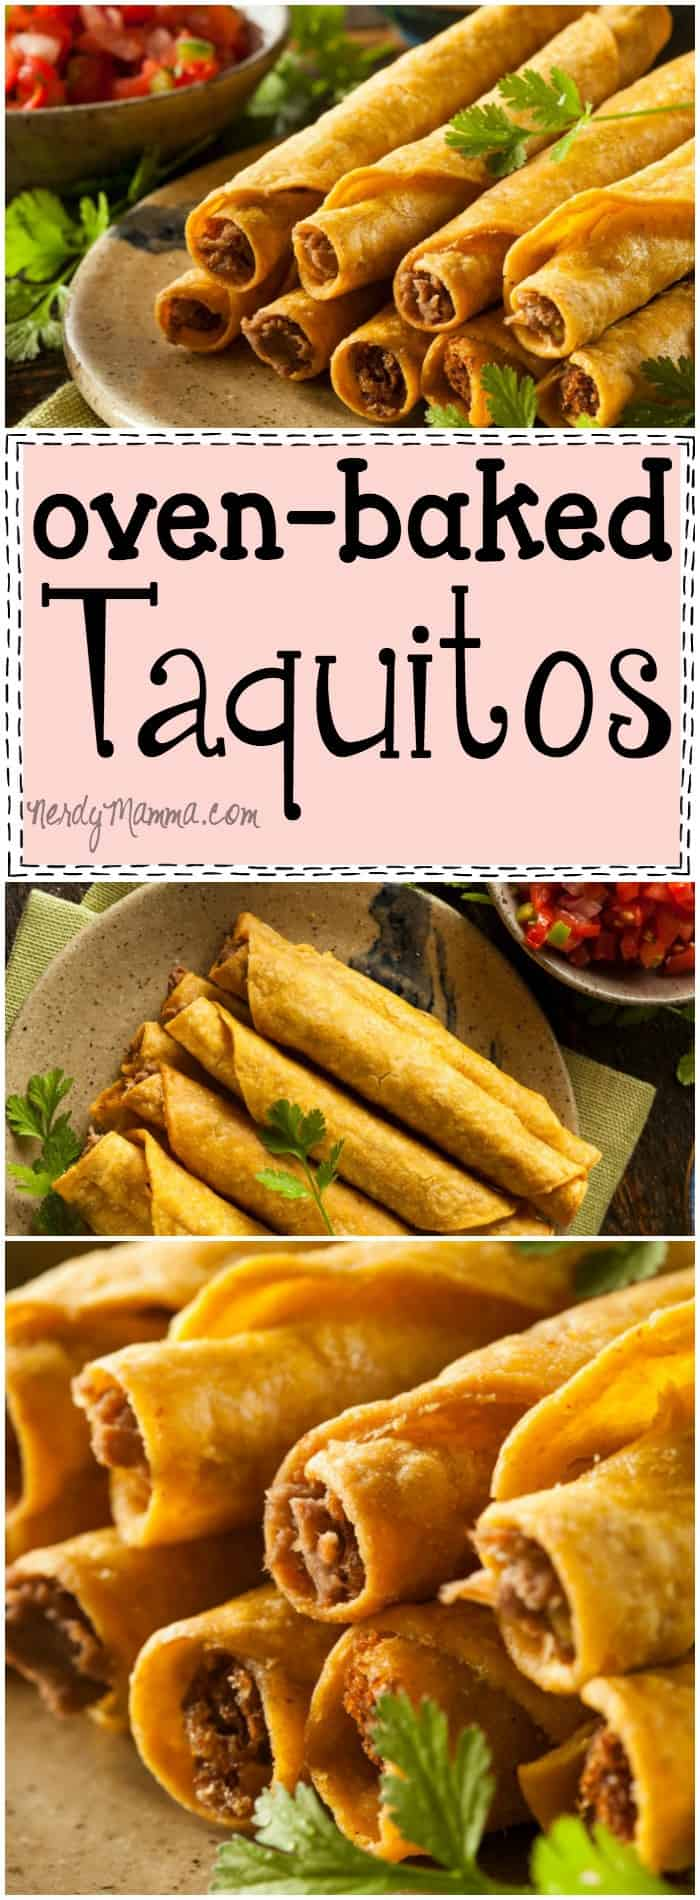 I love this recipe for homemade oven baked taquitos. Seriously. Homemade baked taquitos are so easy--and sounds so TASTY! #taquitos #ovenbakedtaquitos #homemadebakedtaquitos #homemadetaquitosbaked #mexicanfood #food #recipe #mexicanreipe #mexicanrestaurantfood